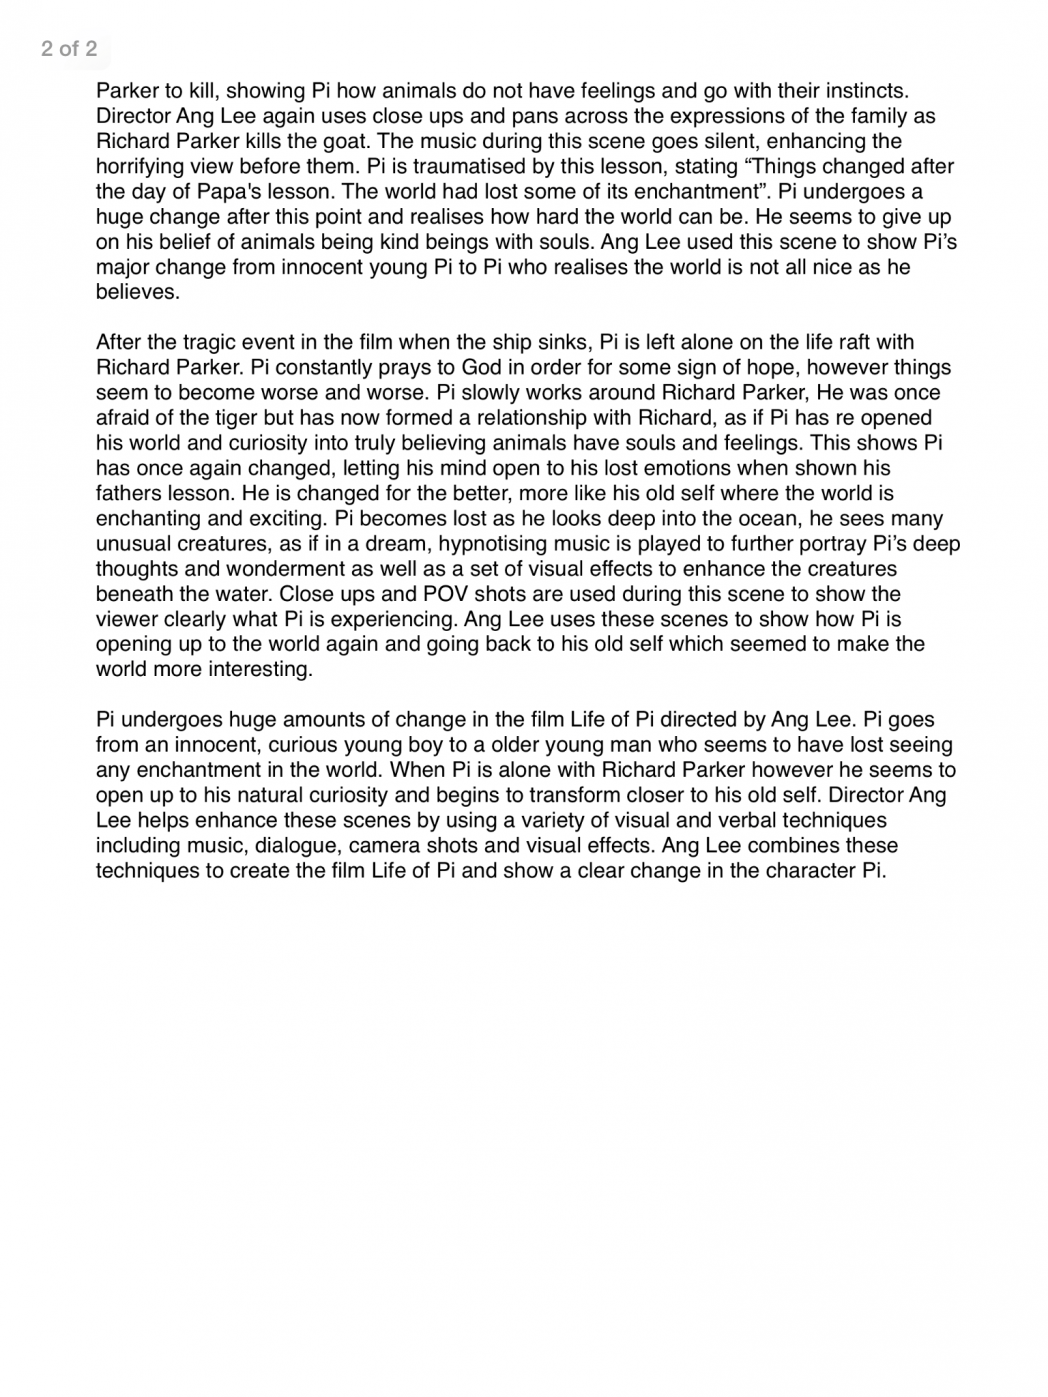 003 Essay Example Macbeth Plan Ambition Theme Of Writing Img 1048x1397 Conclusion Best For Full